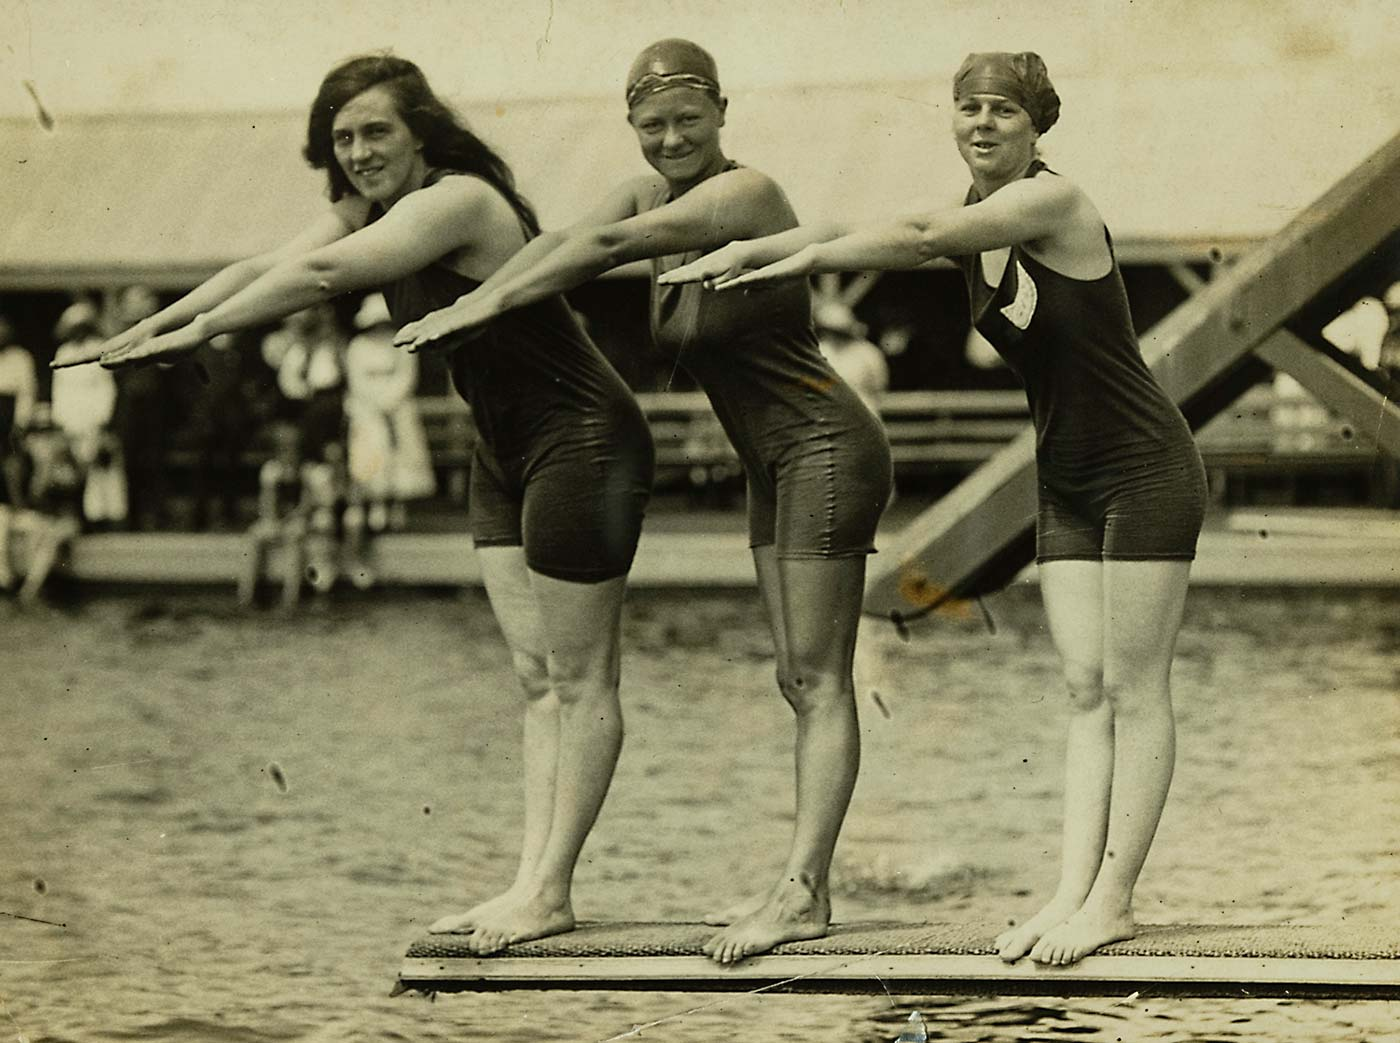 A black and white photo of Fanny Durack, Mina Wylie and Jennie Fletcher dressed in swimming costumes and standing with arms outstretched on a diving board above a swimming pool.